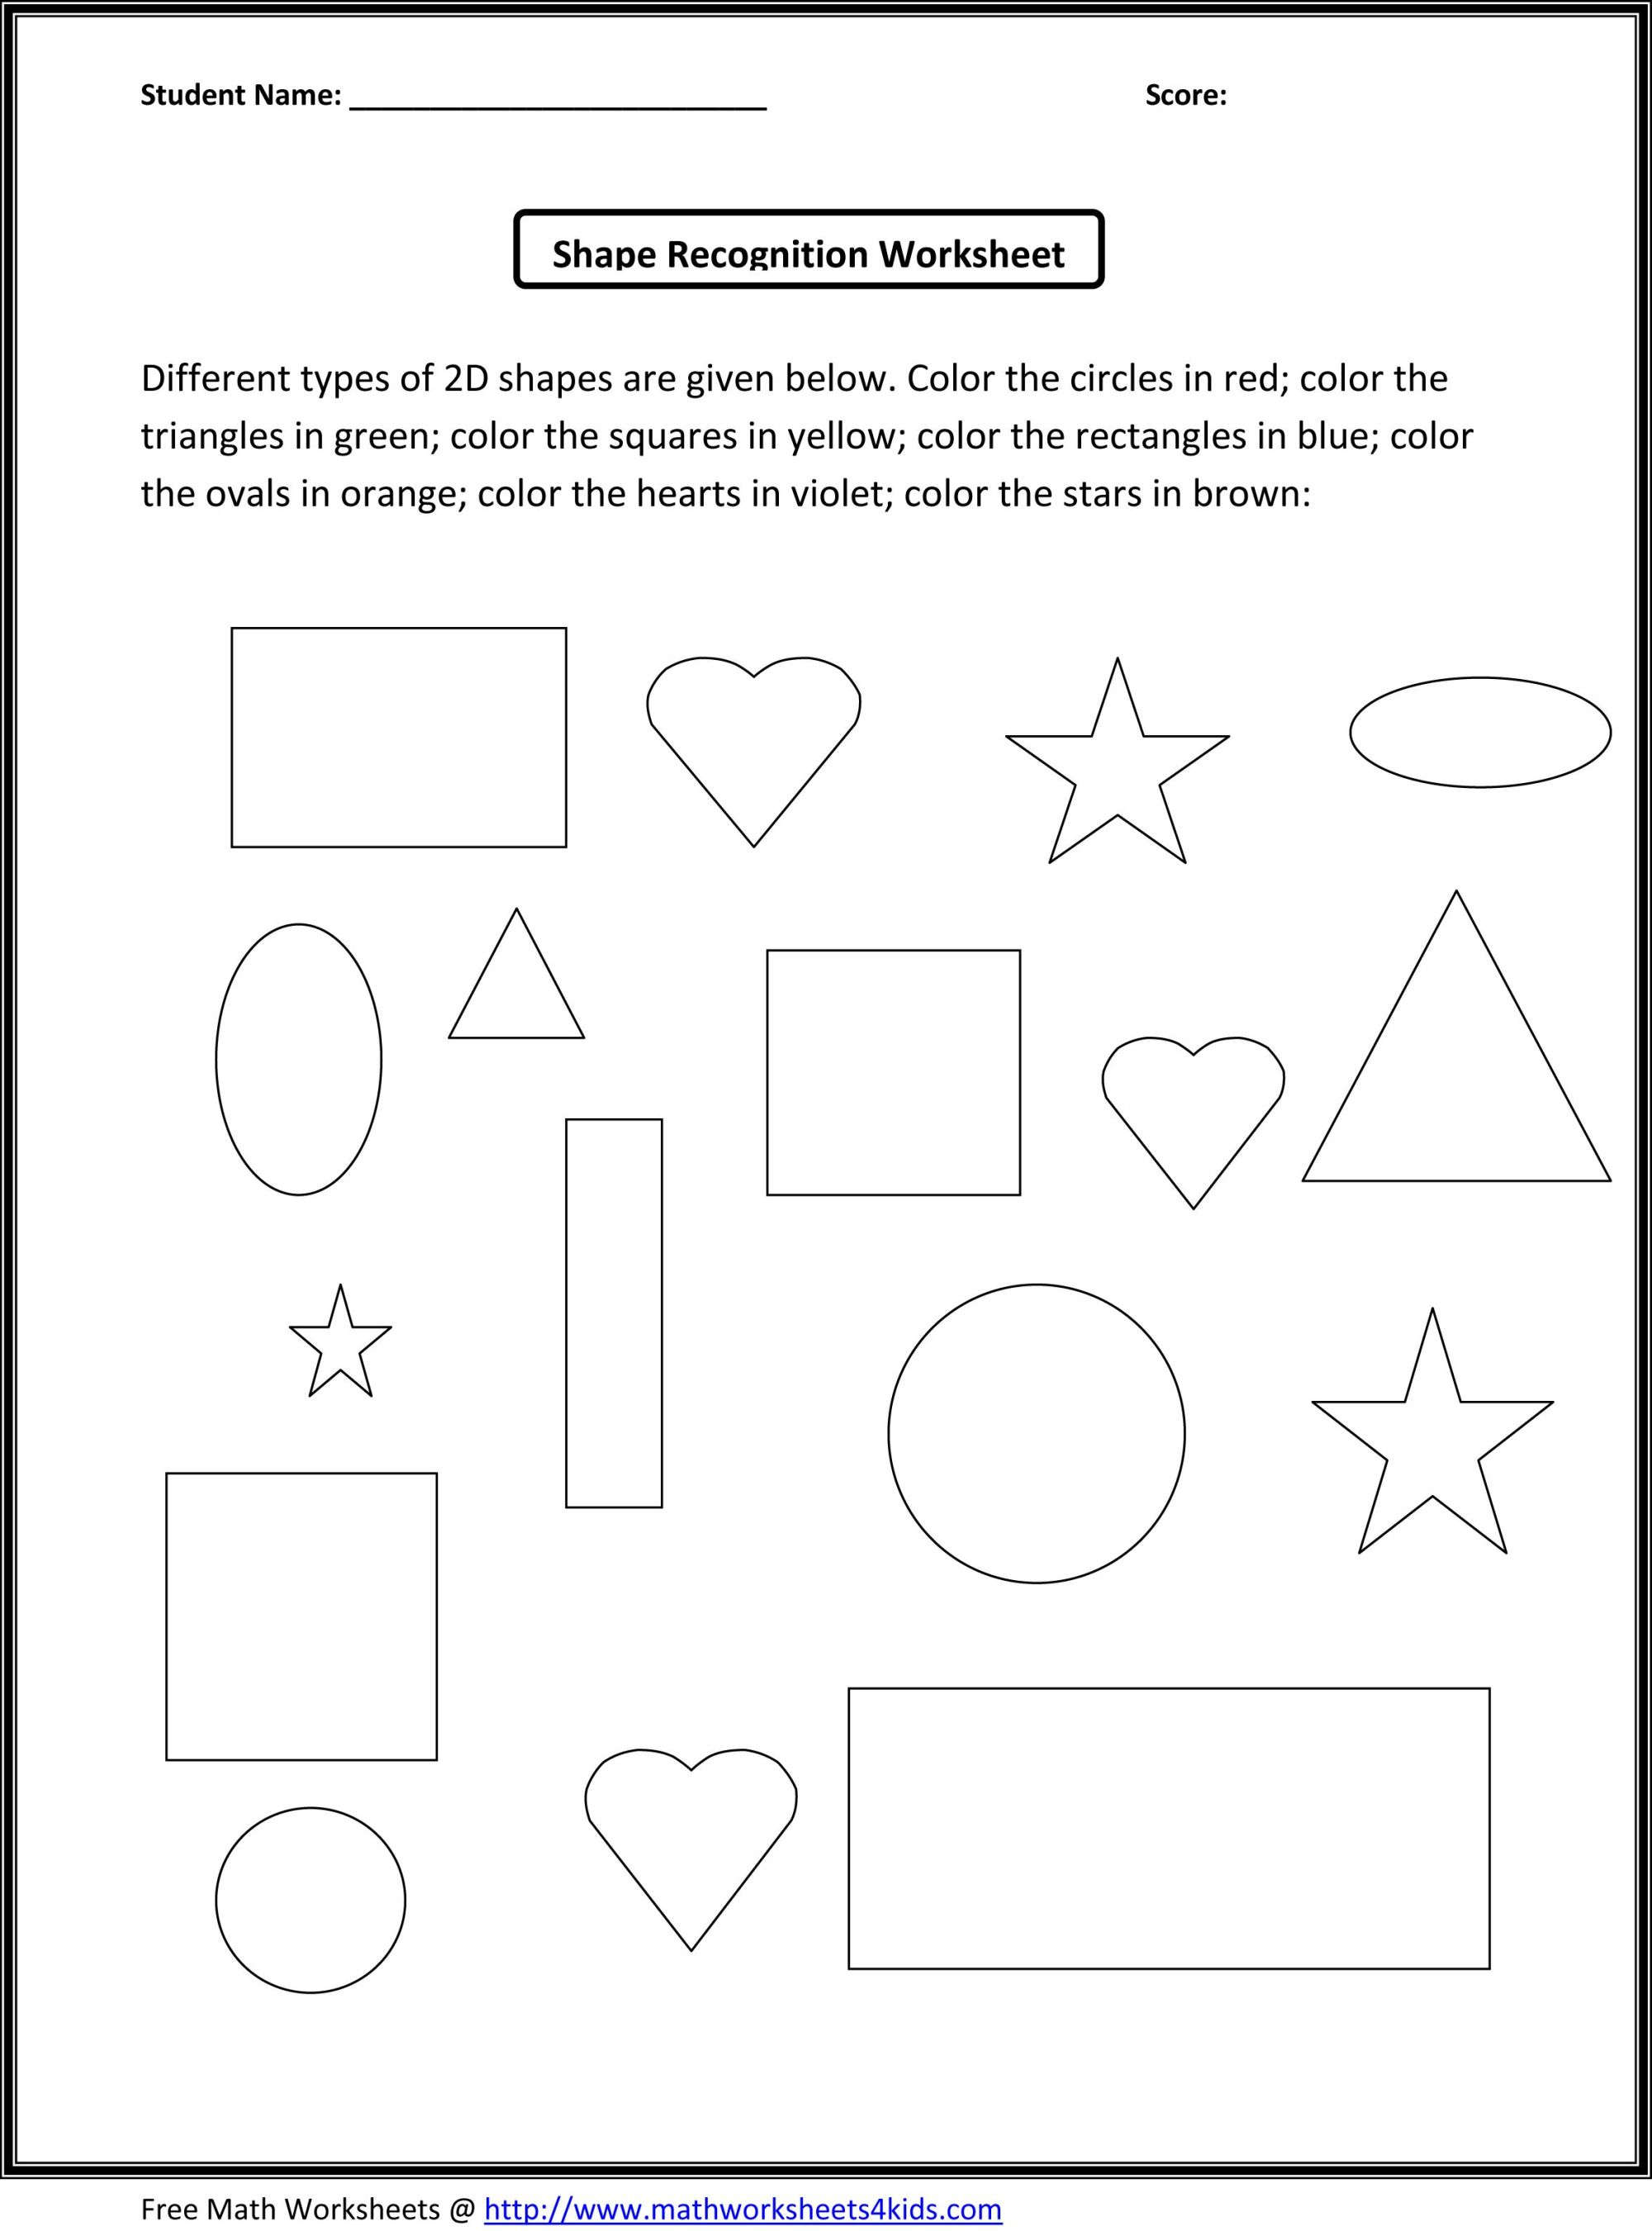 hight resolution of 18 Best Rectangles Triangles Worksheets images on Best Worksheets Collection